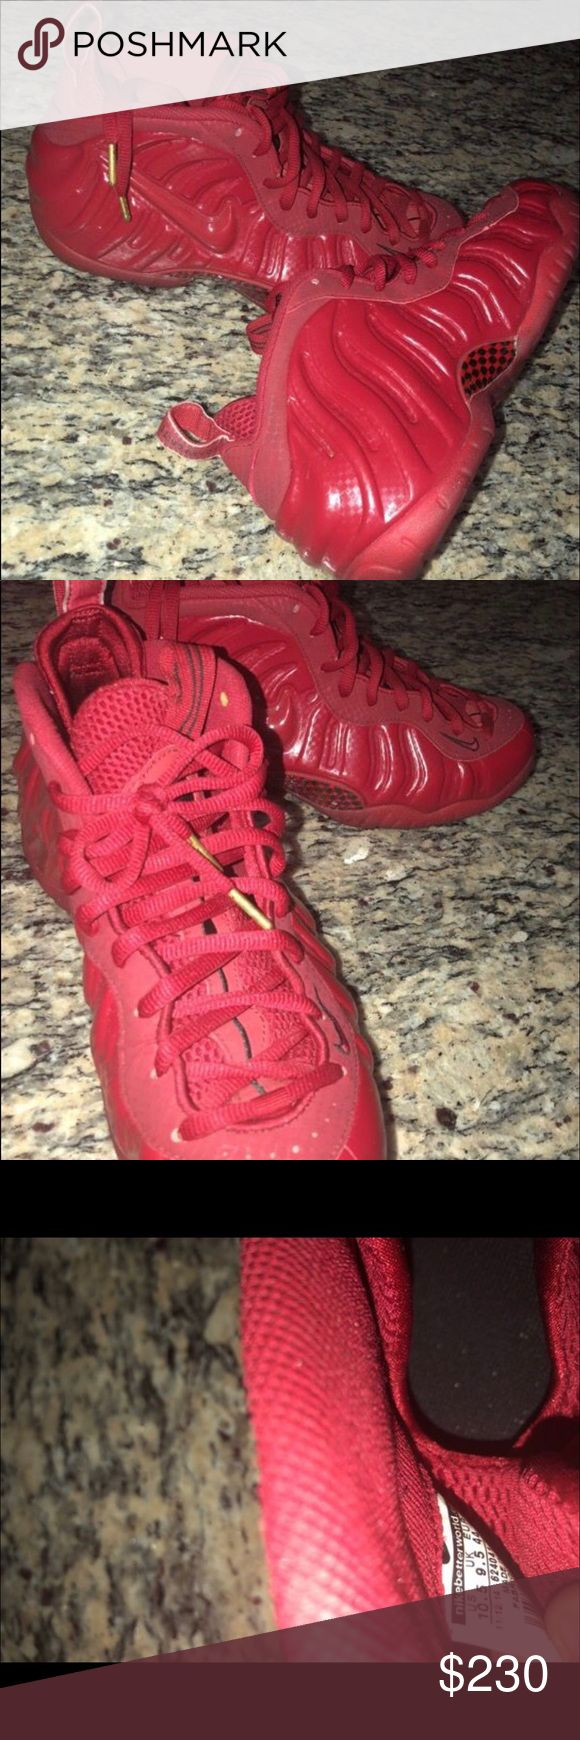 Gym Red Foamposites 8.5/10 condition , worn a couple times , size 10.5 Nike Shoes Sneakers